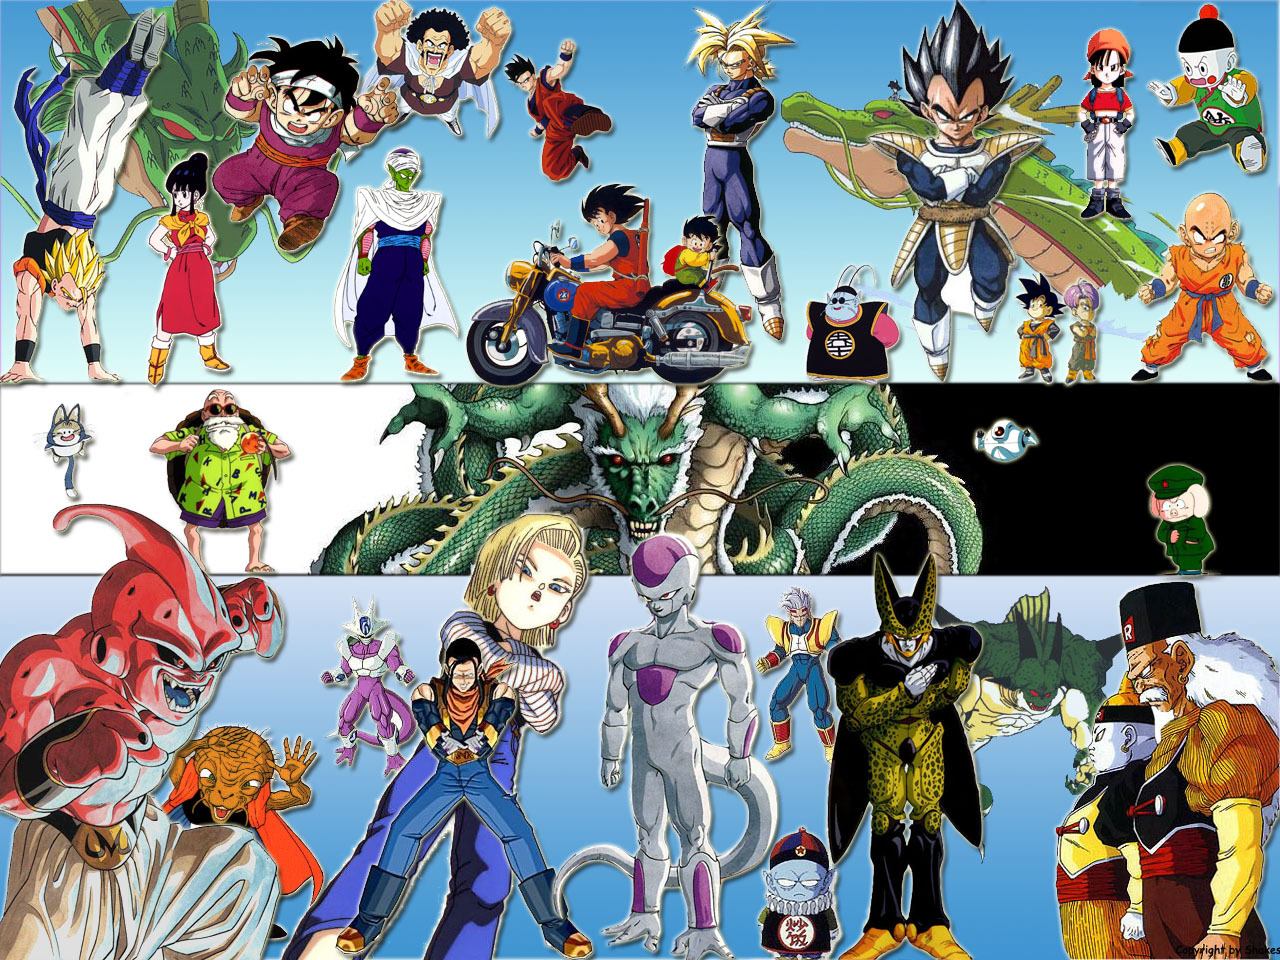 Wallpapers dragon ball z hd im genes taringa - Tout les image de dragon ball z ...